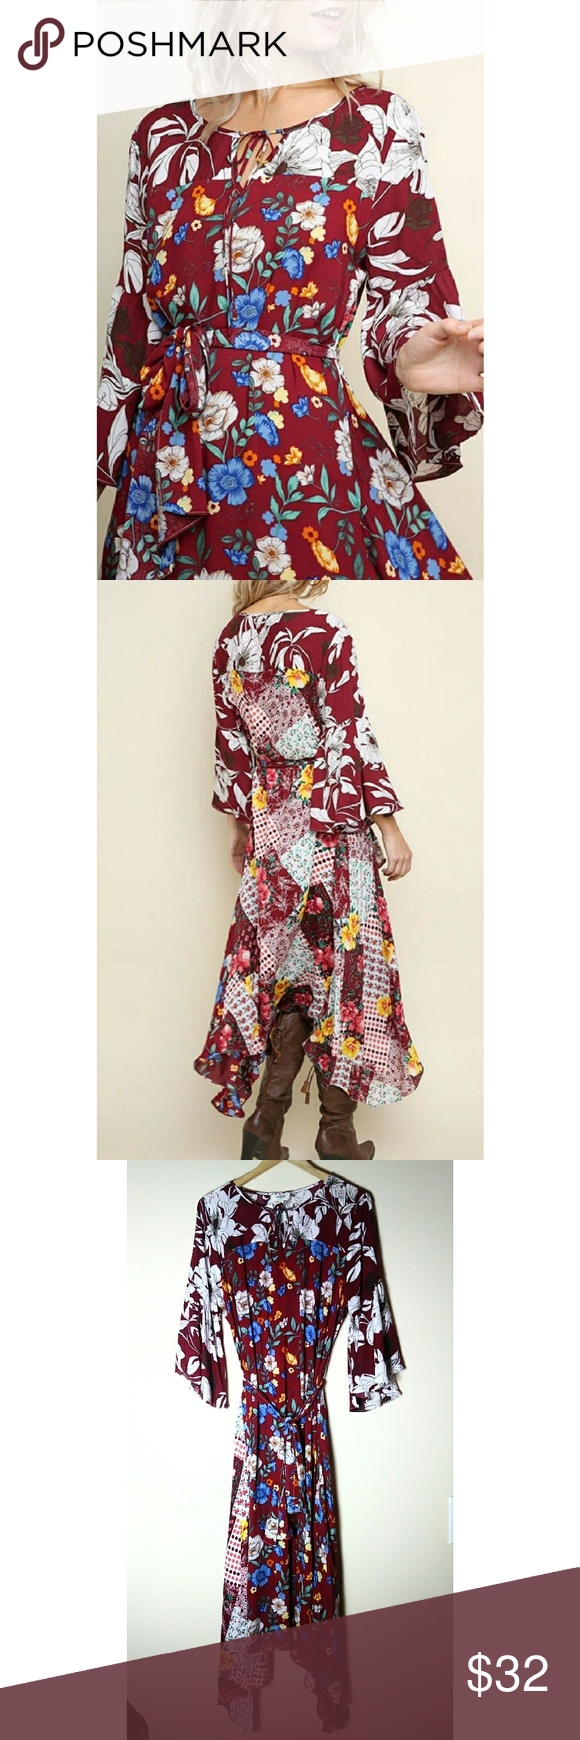 fe2fc9ee4b Umgee Floral Bell Sleeve Dress Umgee Mix Multi-Floral Print Bell Sleeve Asymmetrical  Maxi Dress with a Waist Tie. New with tags.